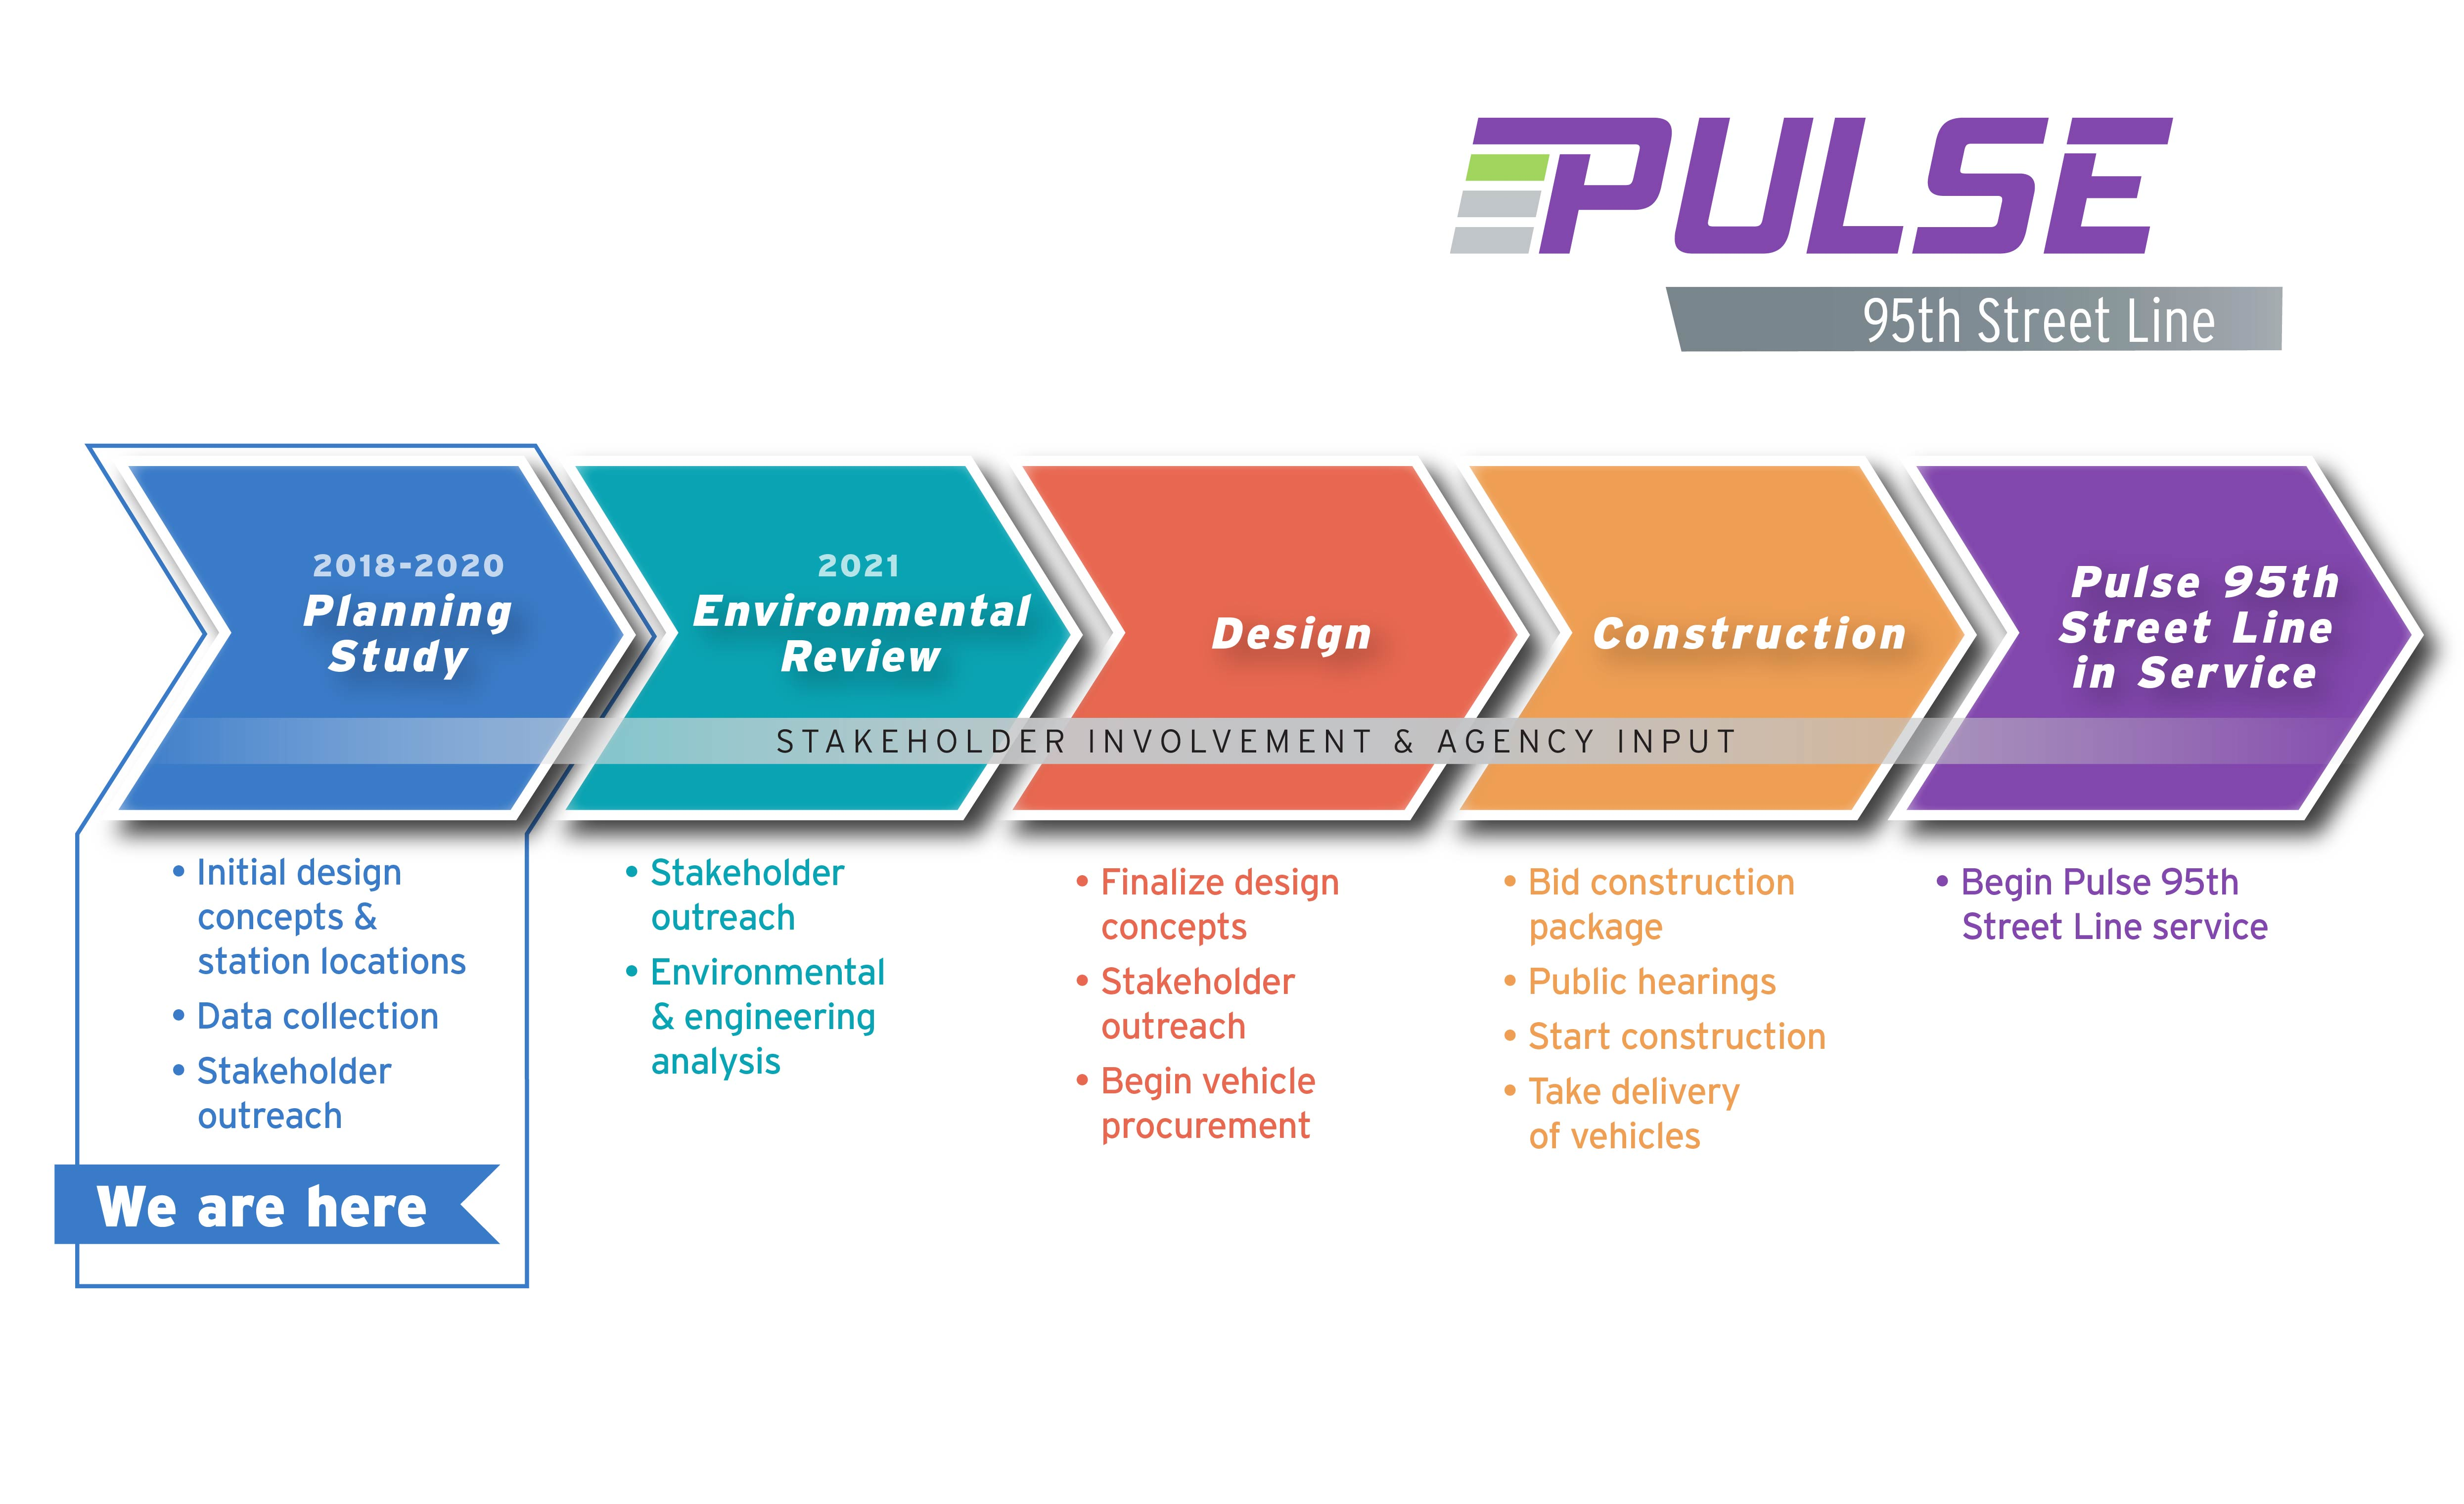 Image of the project timeline for the 95th St Pulse Line